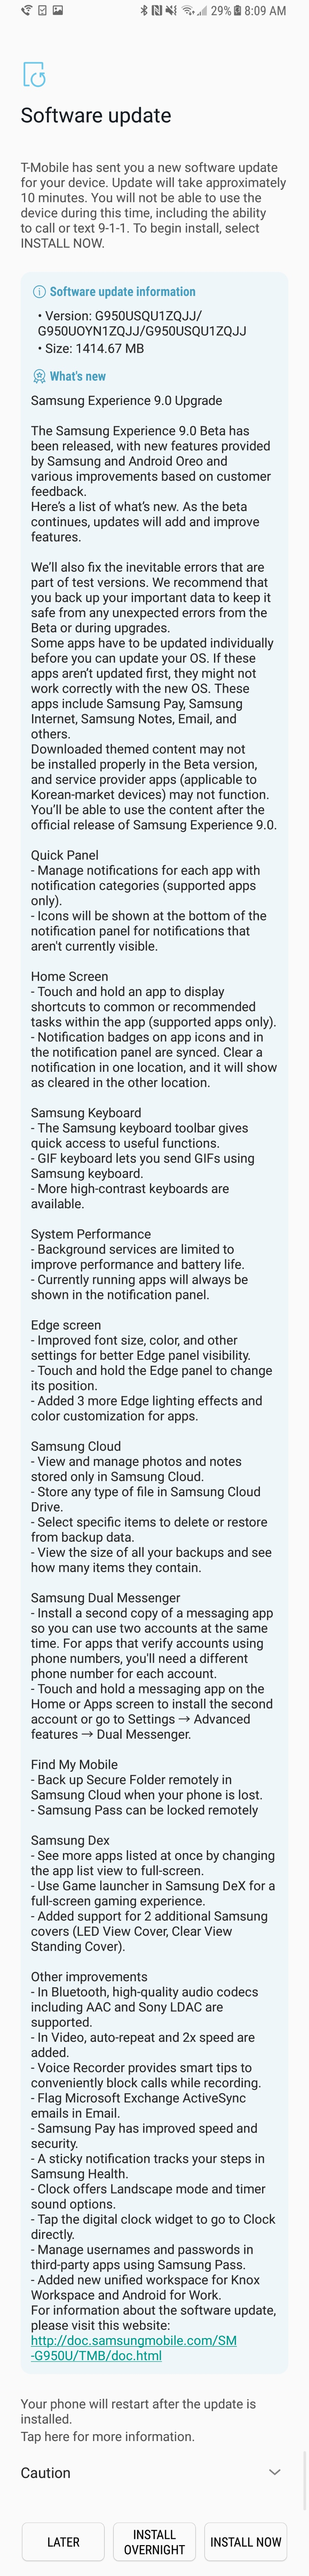 Galaxy S8 Android 8.0 Oreo Beta Changelog